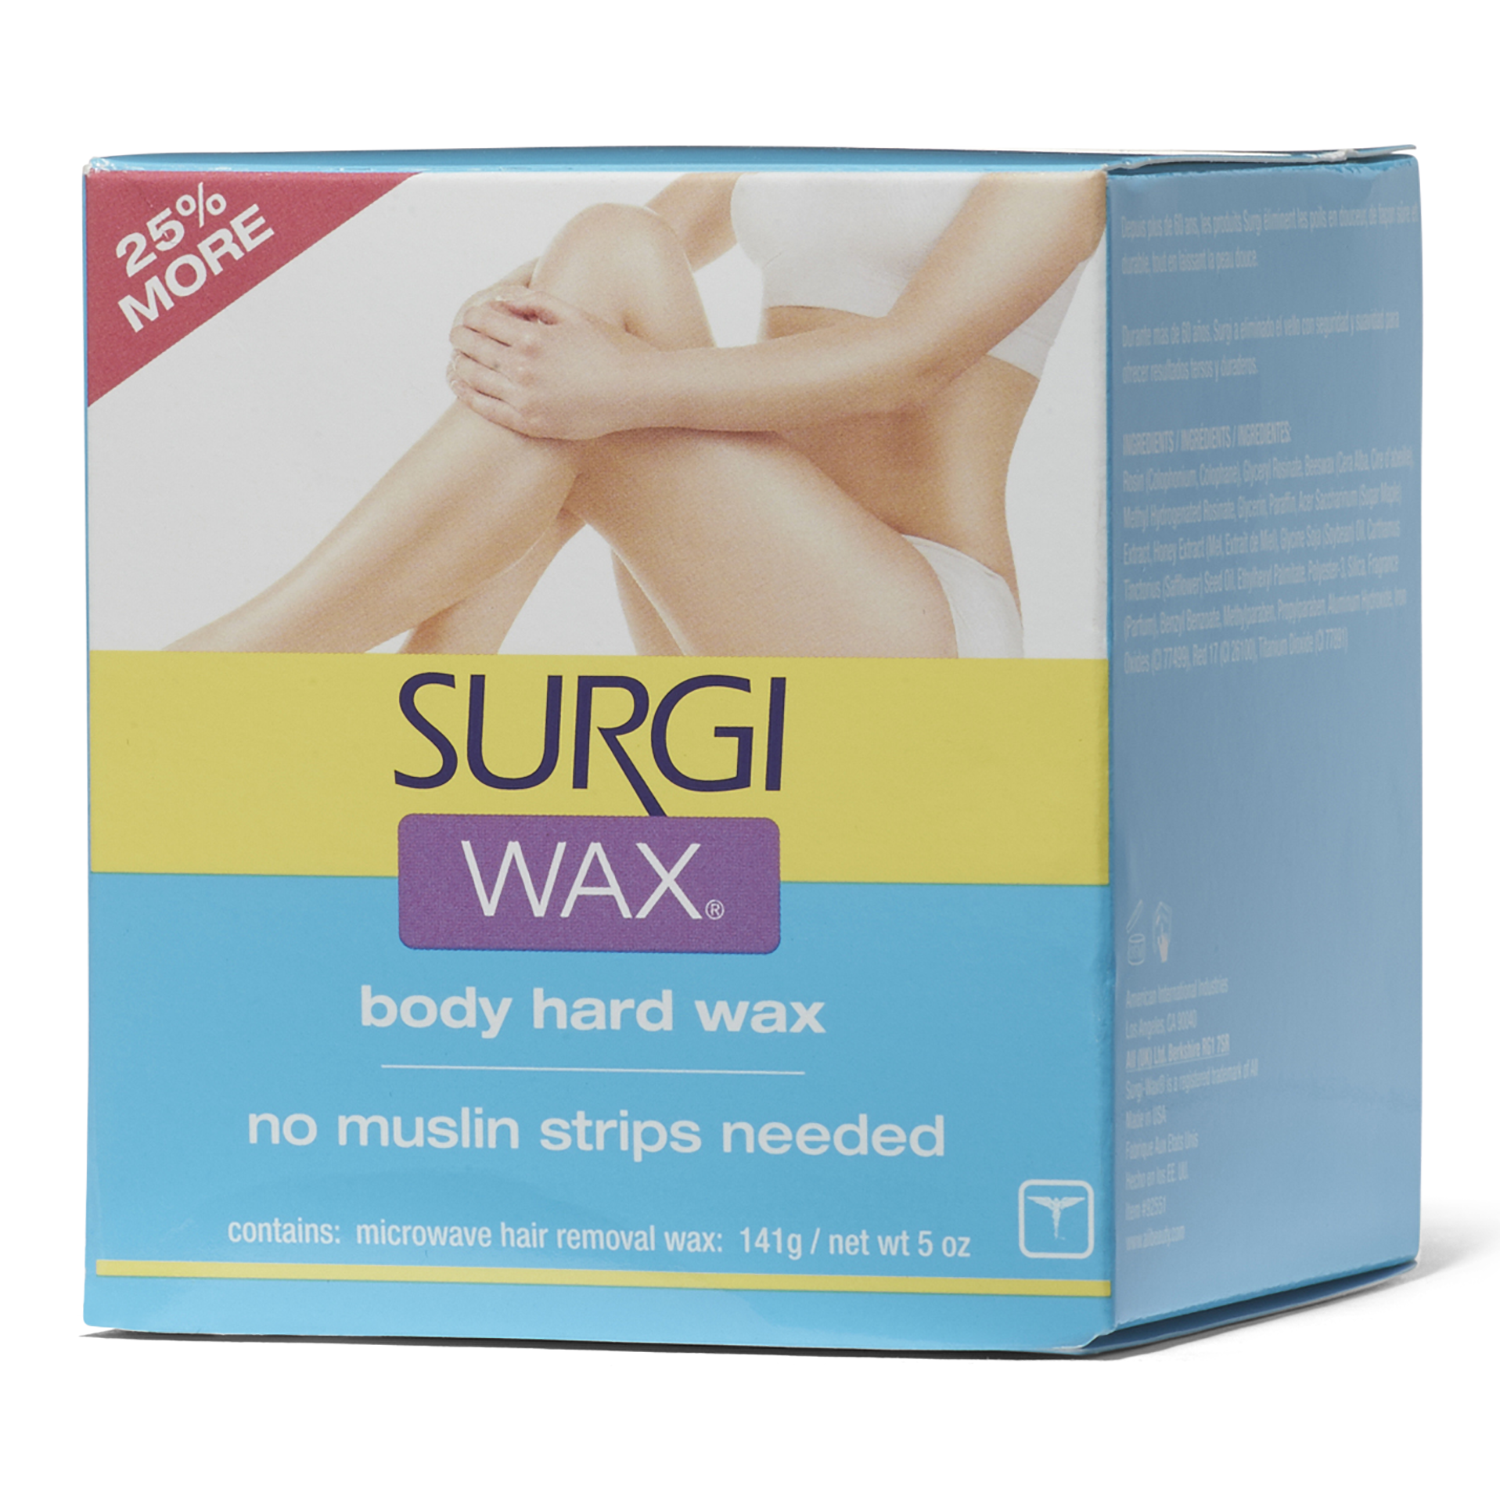 Sally Beauty coupon: Surgi Wax Body & Leg Microwave Hair Remover